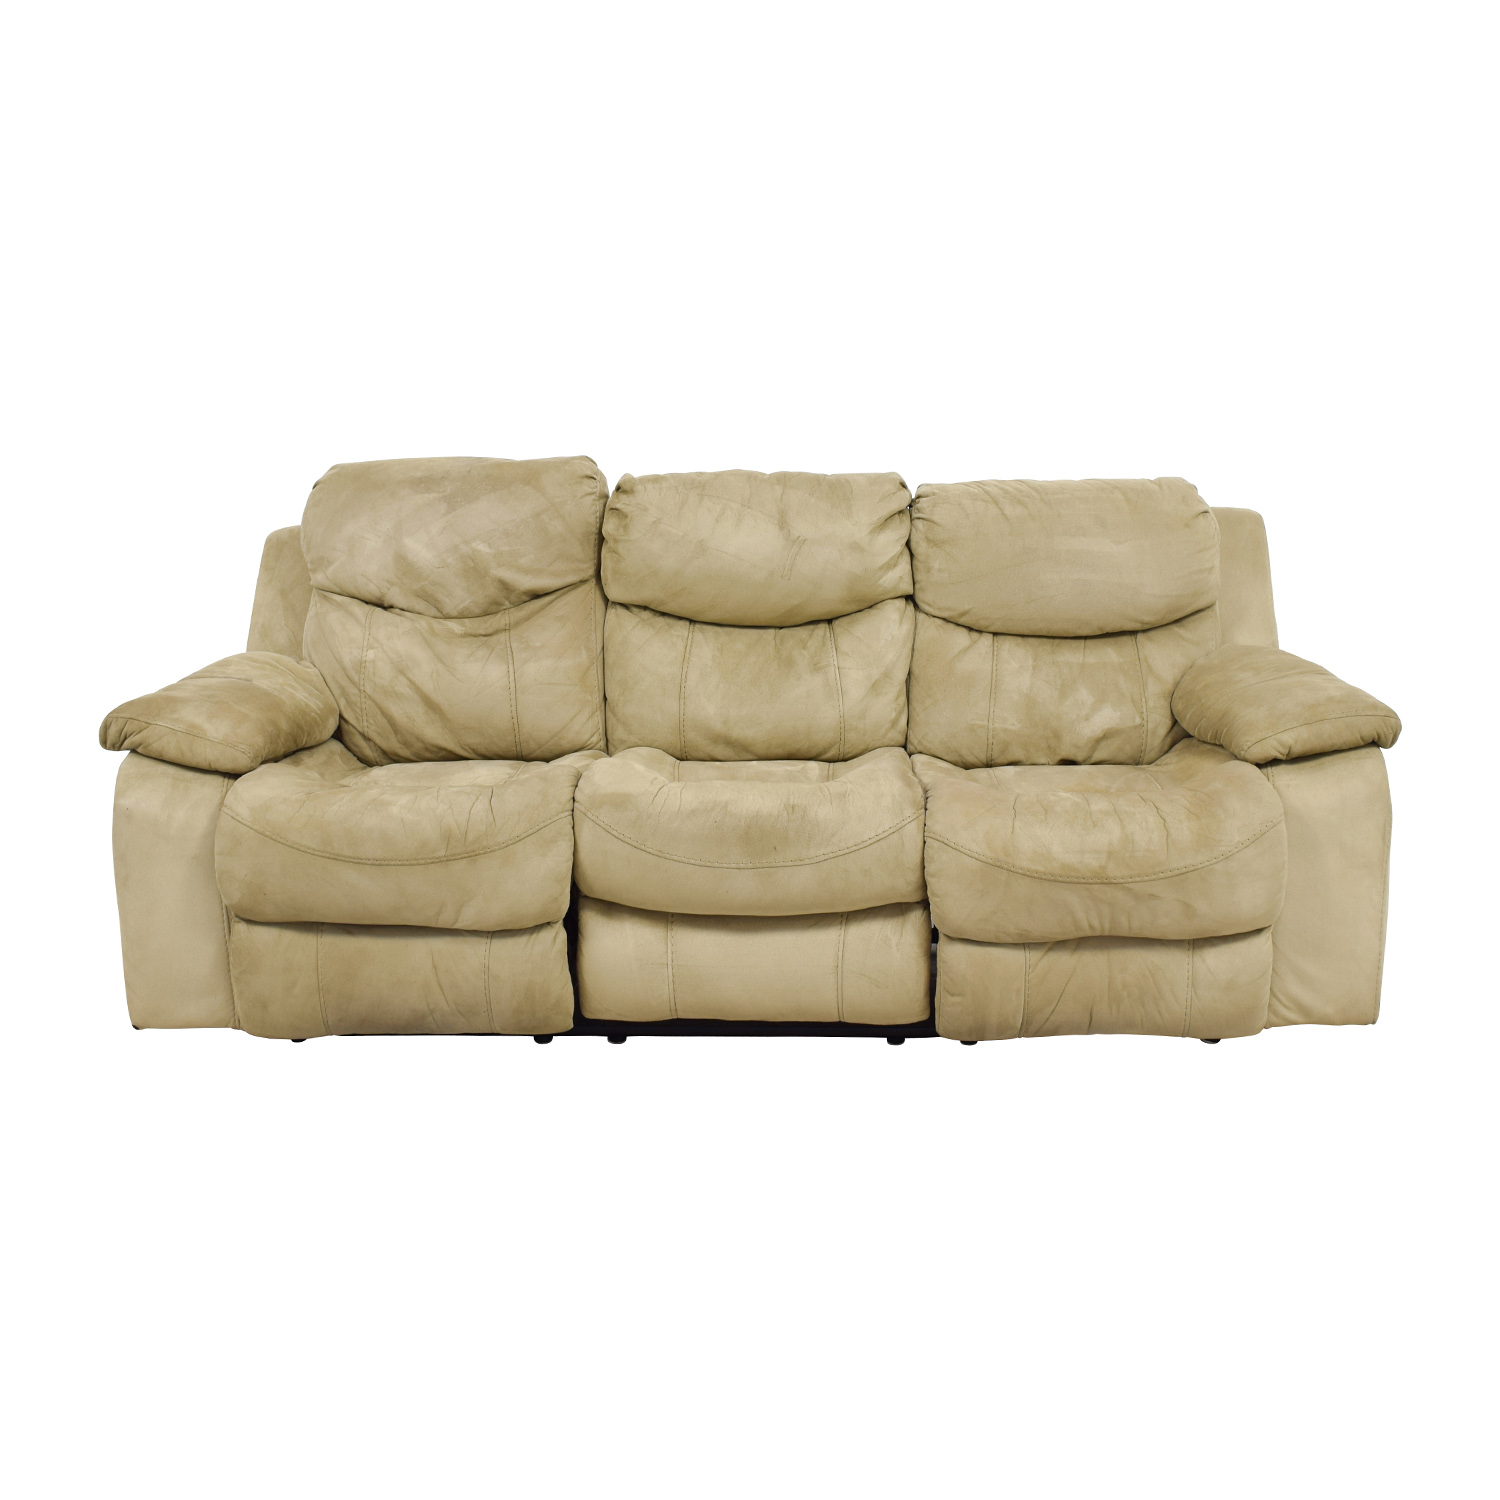 Bobs Furniture Bobs Furniture Beige Dual-Reclining Gliding Sofa discount